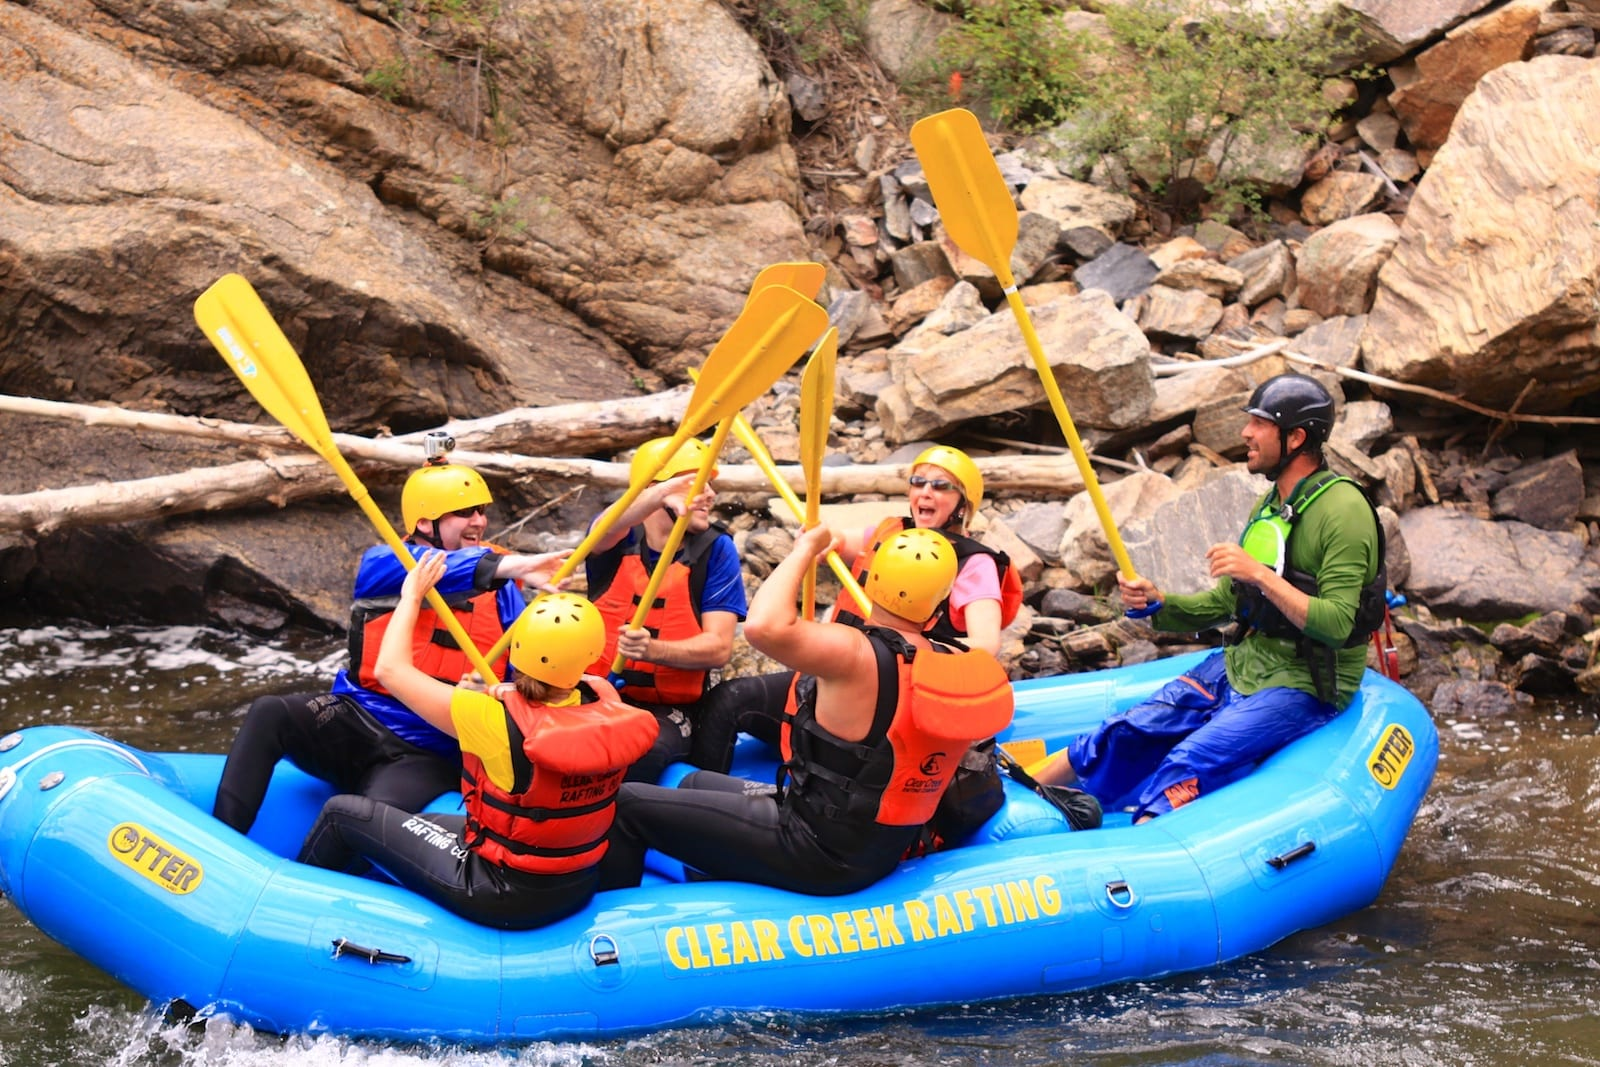 Clear Creek Whitewater Rafting Idaho Springs CO Paddles High Five